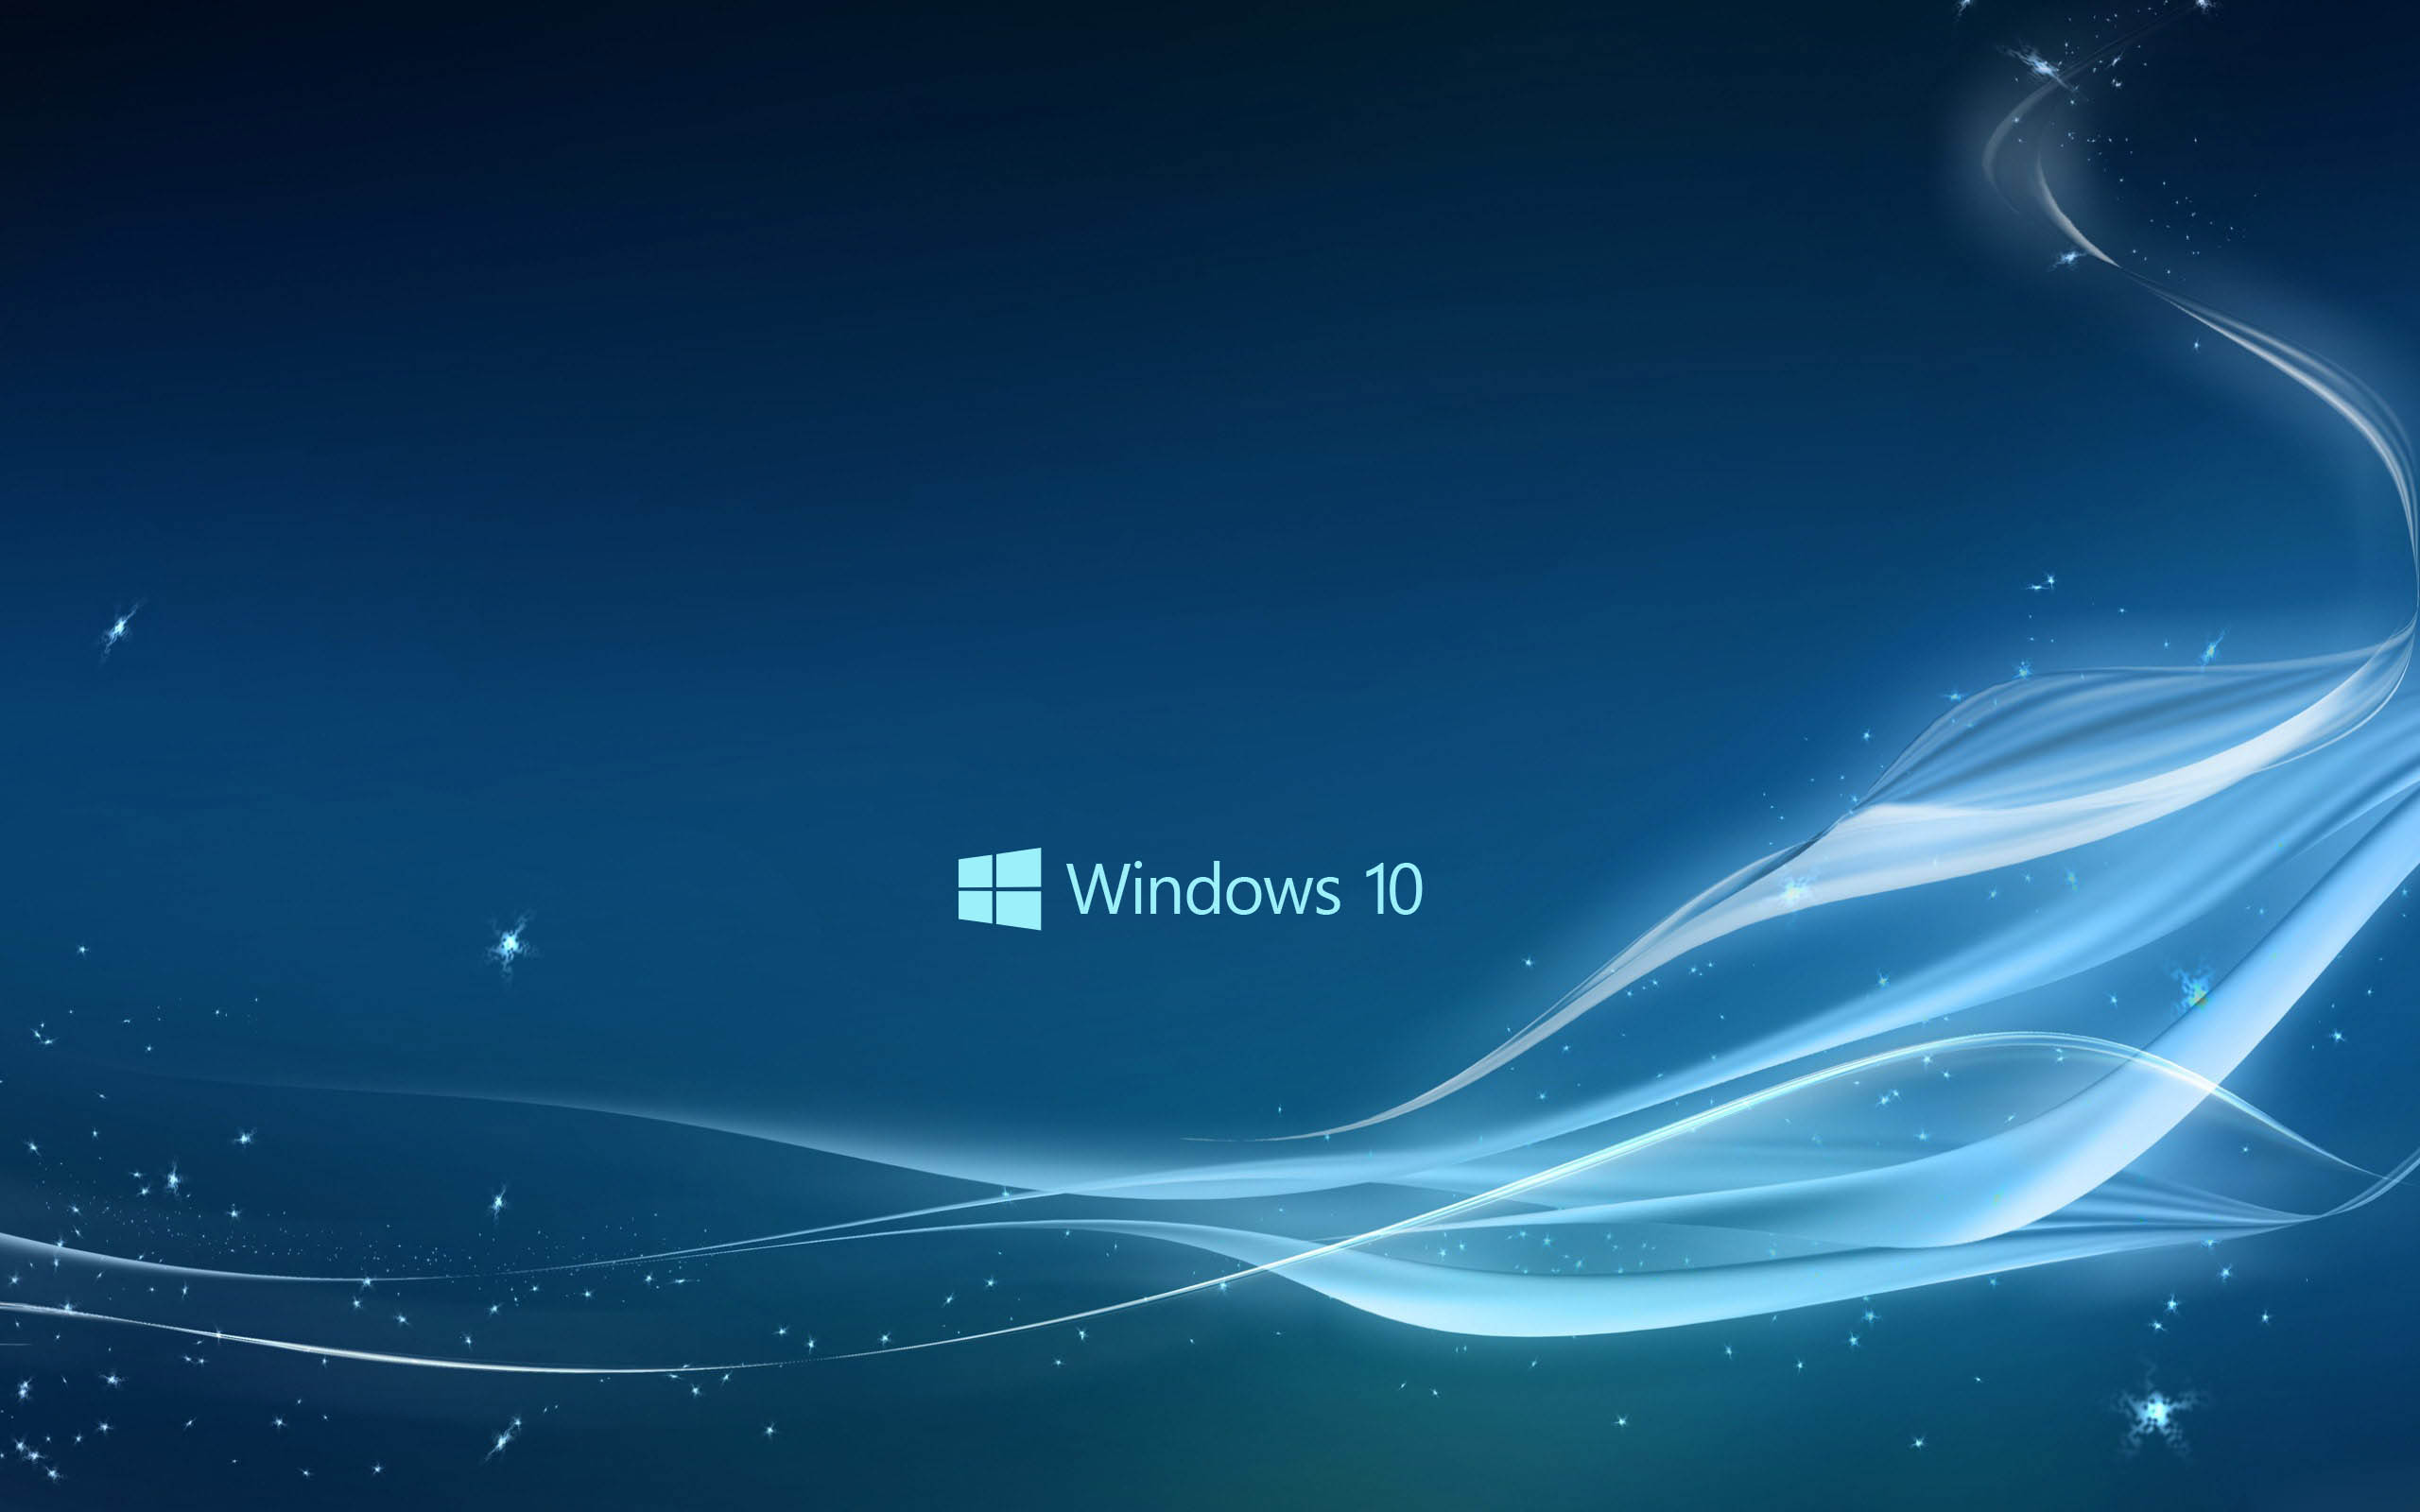 Best Windows 10 Wallpaper PC 15289 Wallpaper WallpaperLepi 2560x1600